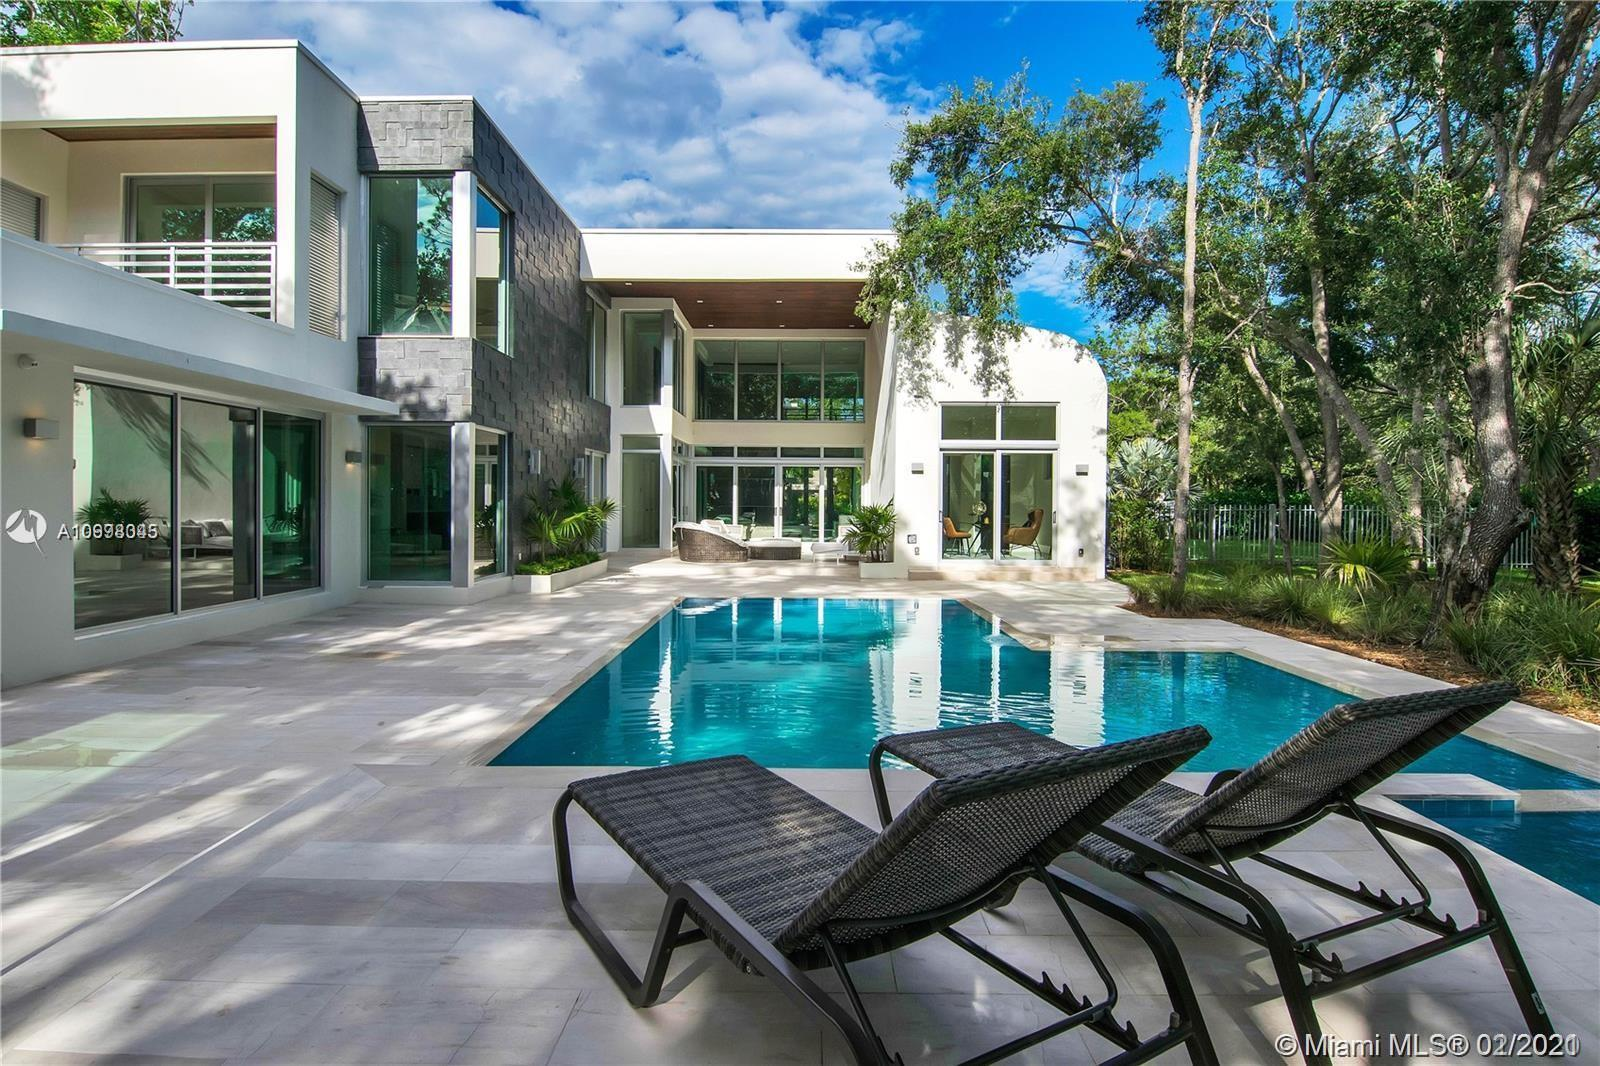 Moderism comes to Pinecrest in this 2 story amazing masterpiece designed by architect Ralph Puig. If